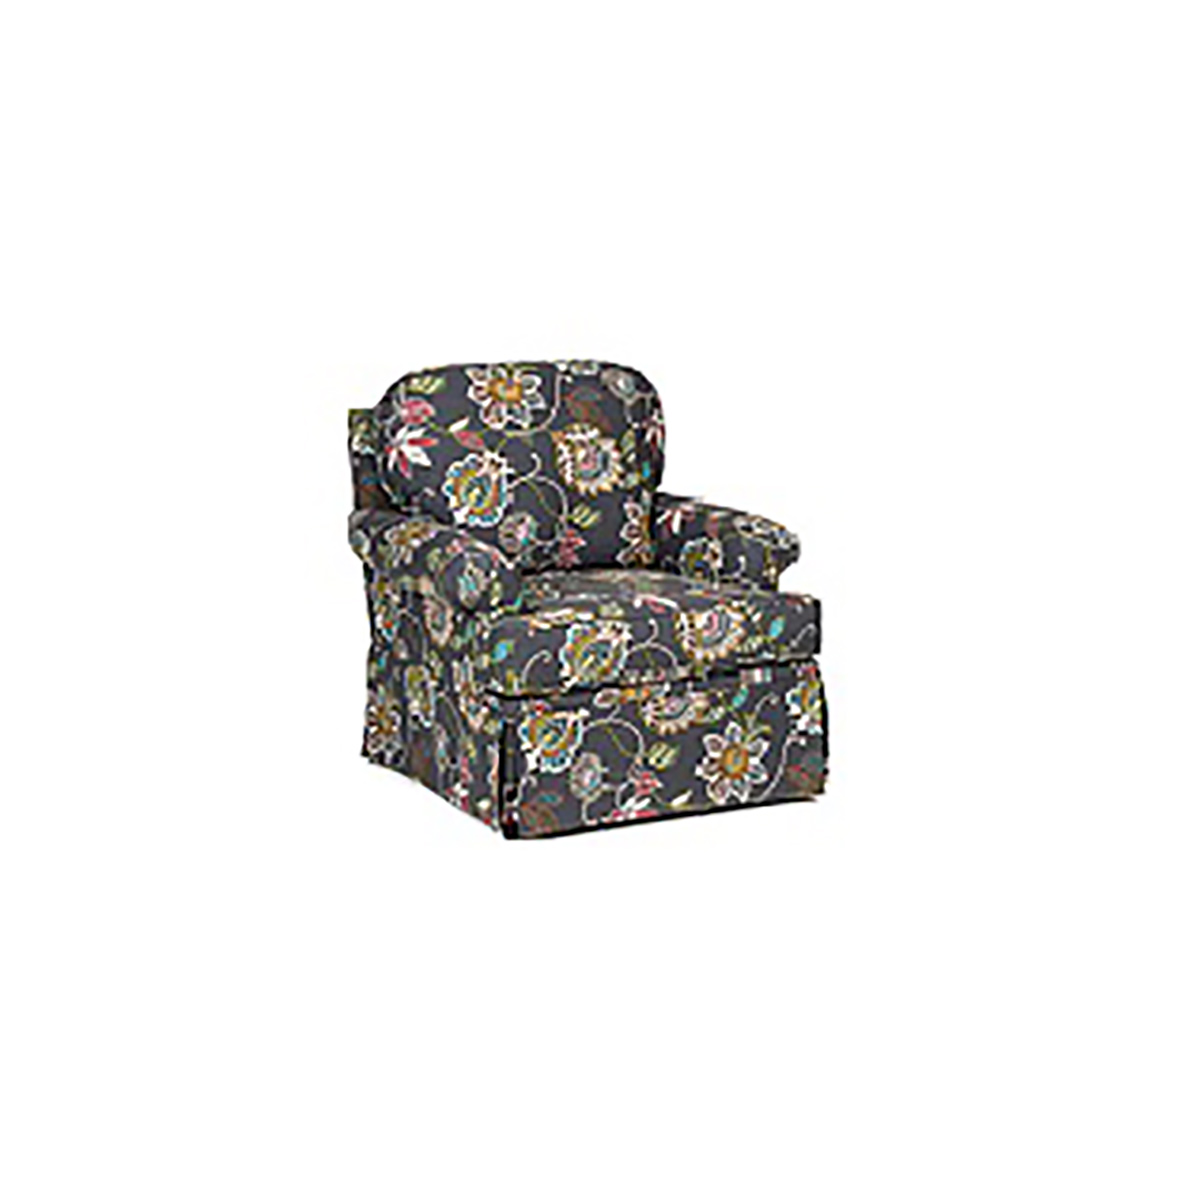 Chelsea Home Groton Chair - Multicolor